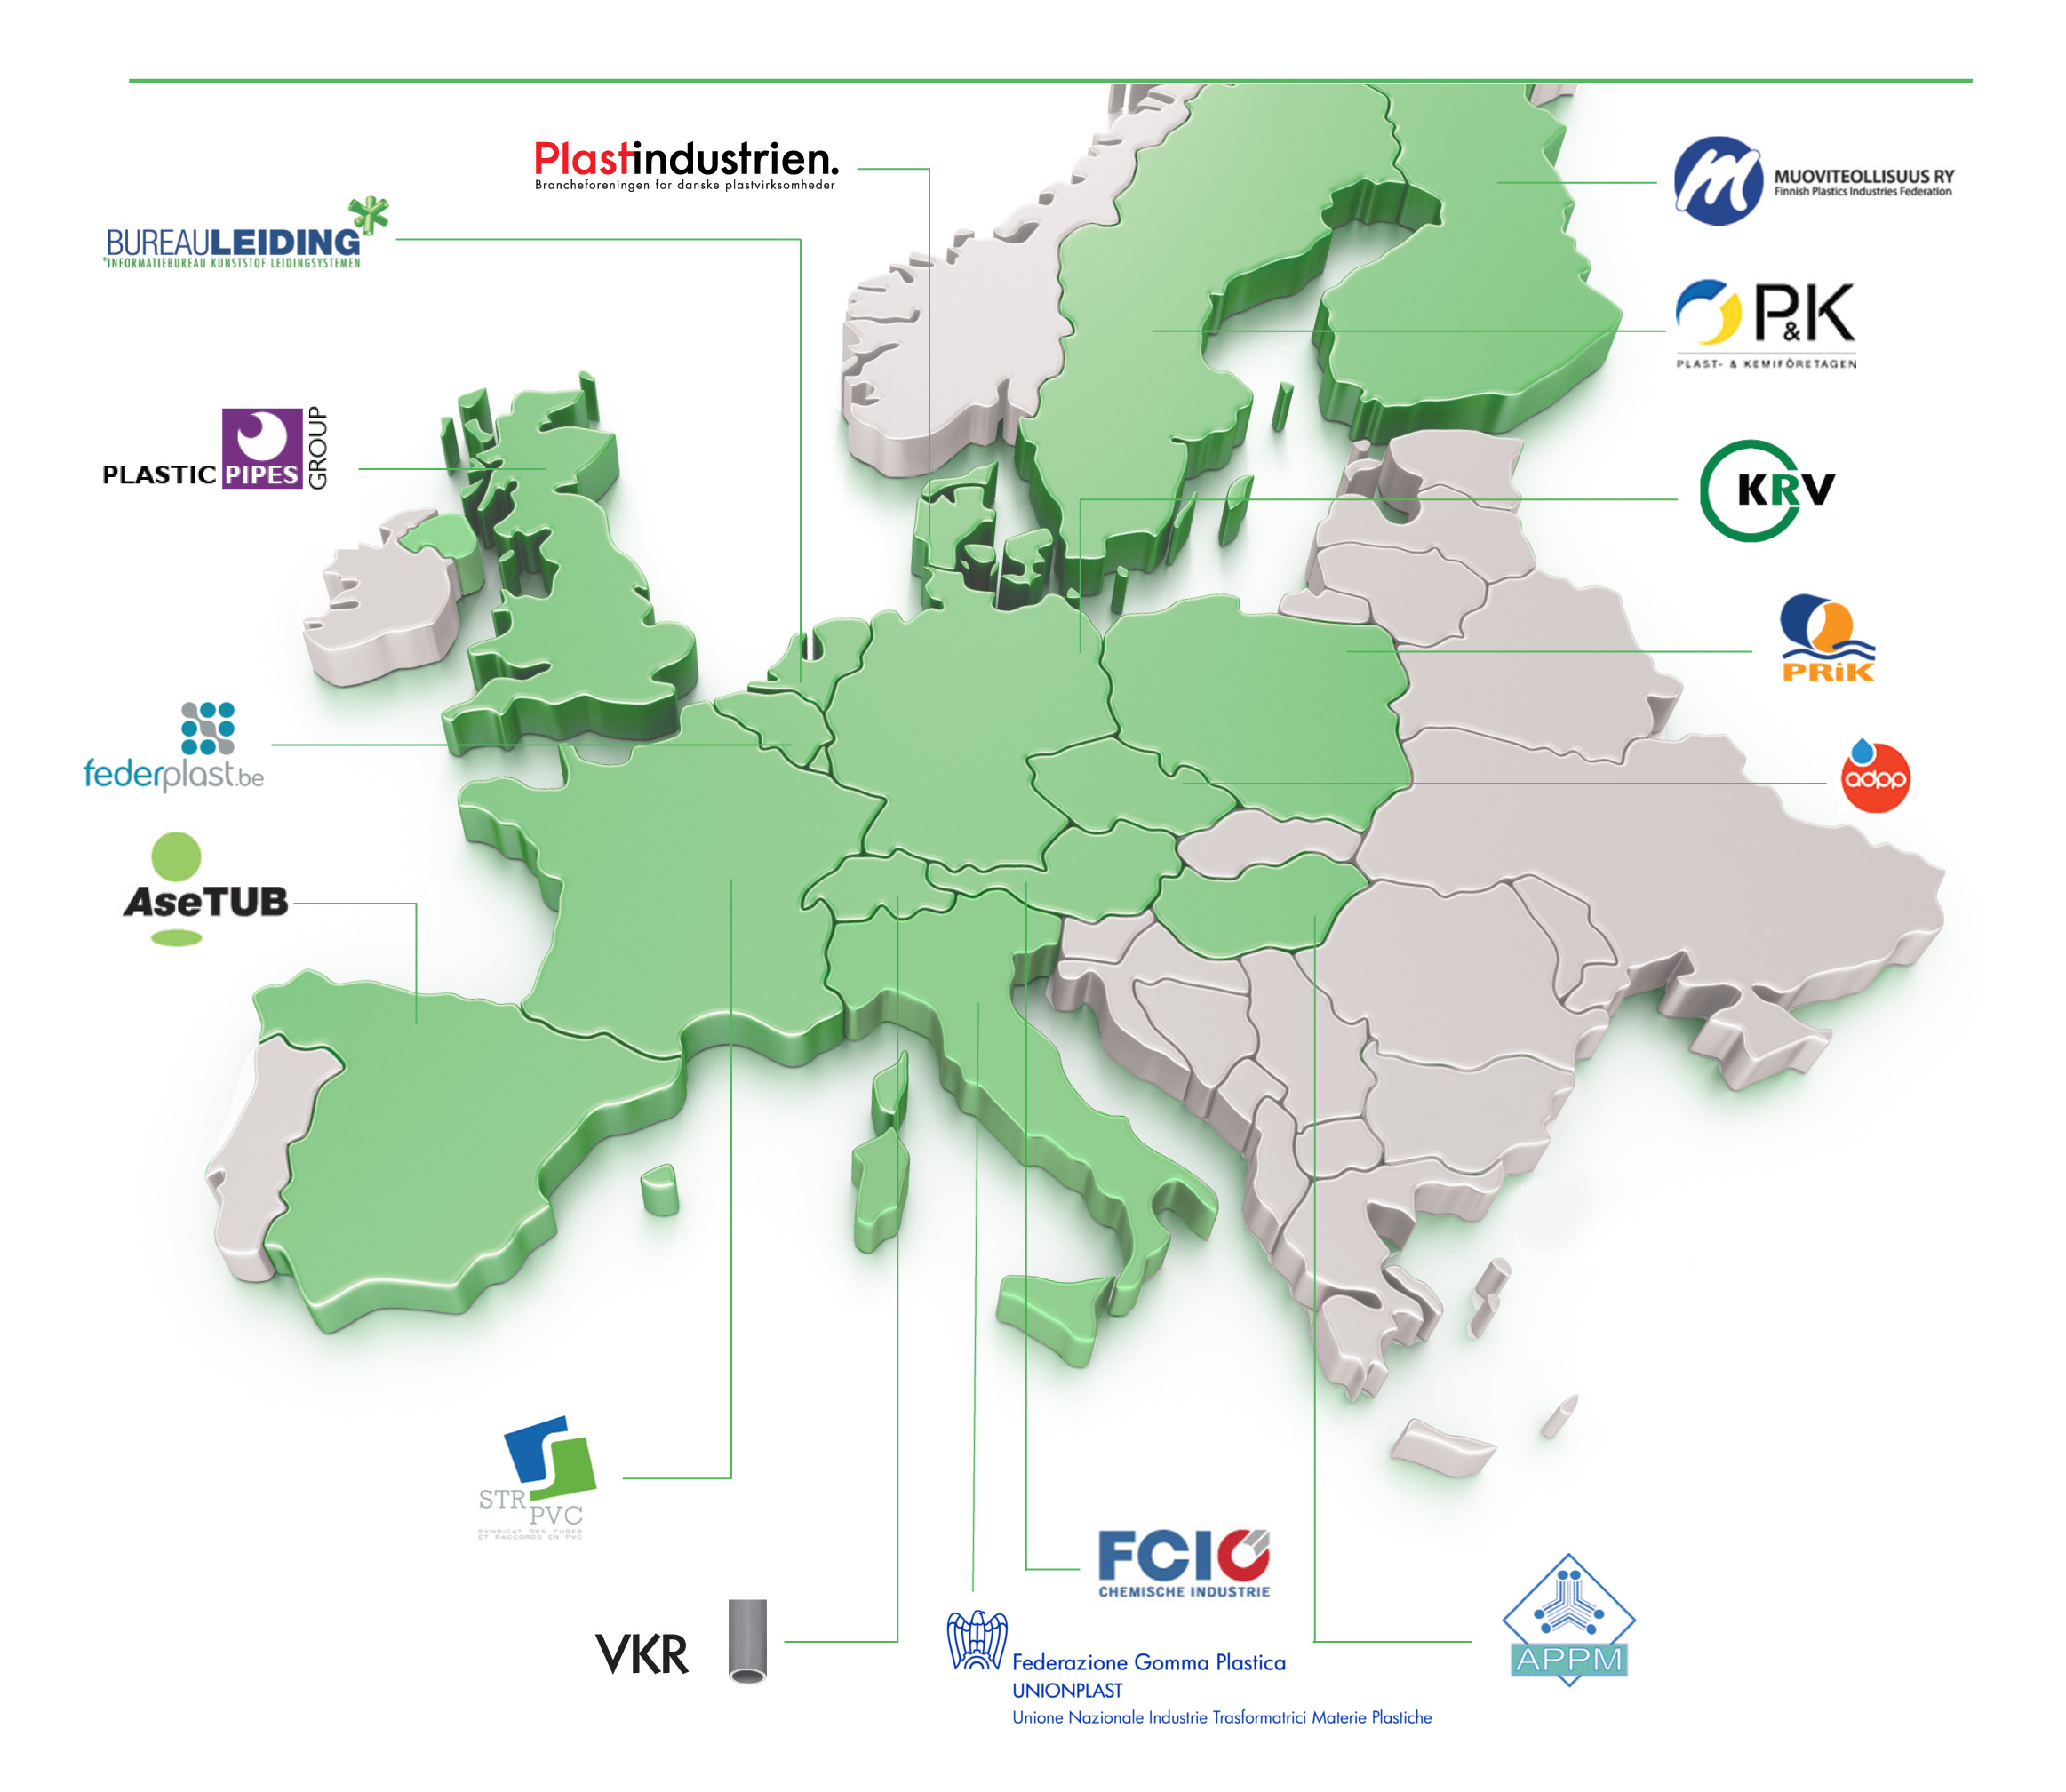 The TEPPFA member companies and organisations across Europe